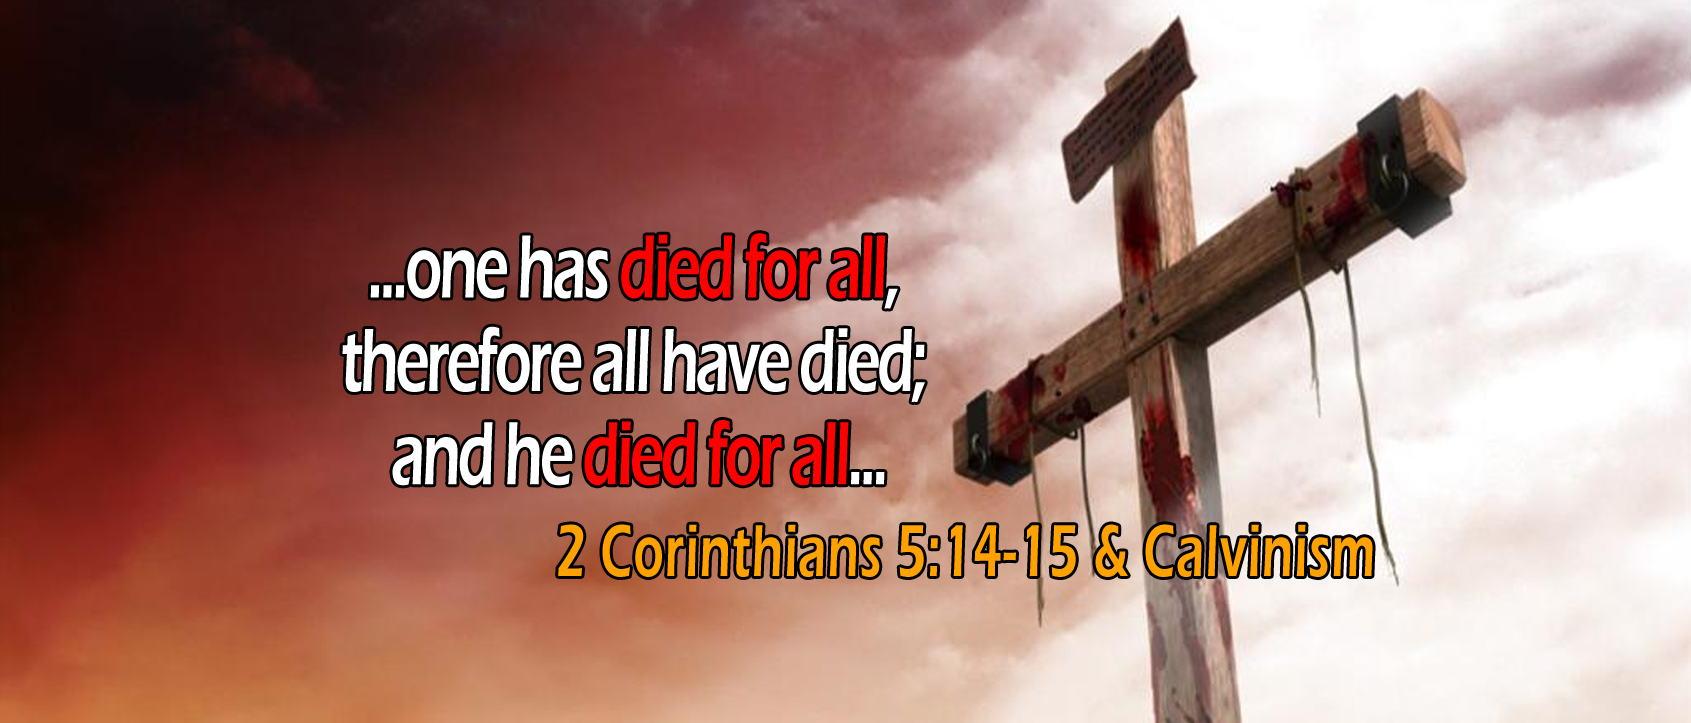 2 Corinthians 5:14-15, 'he died for all'